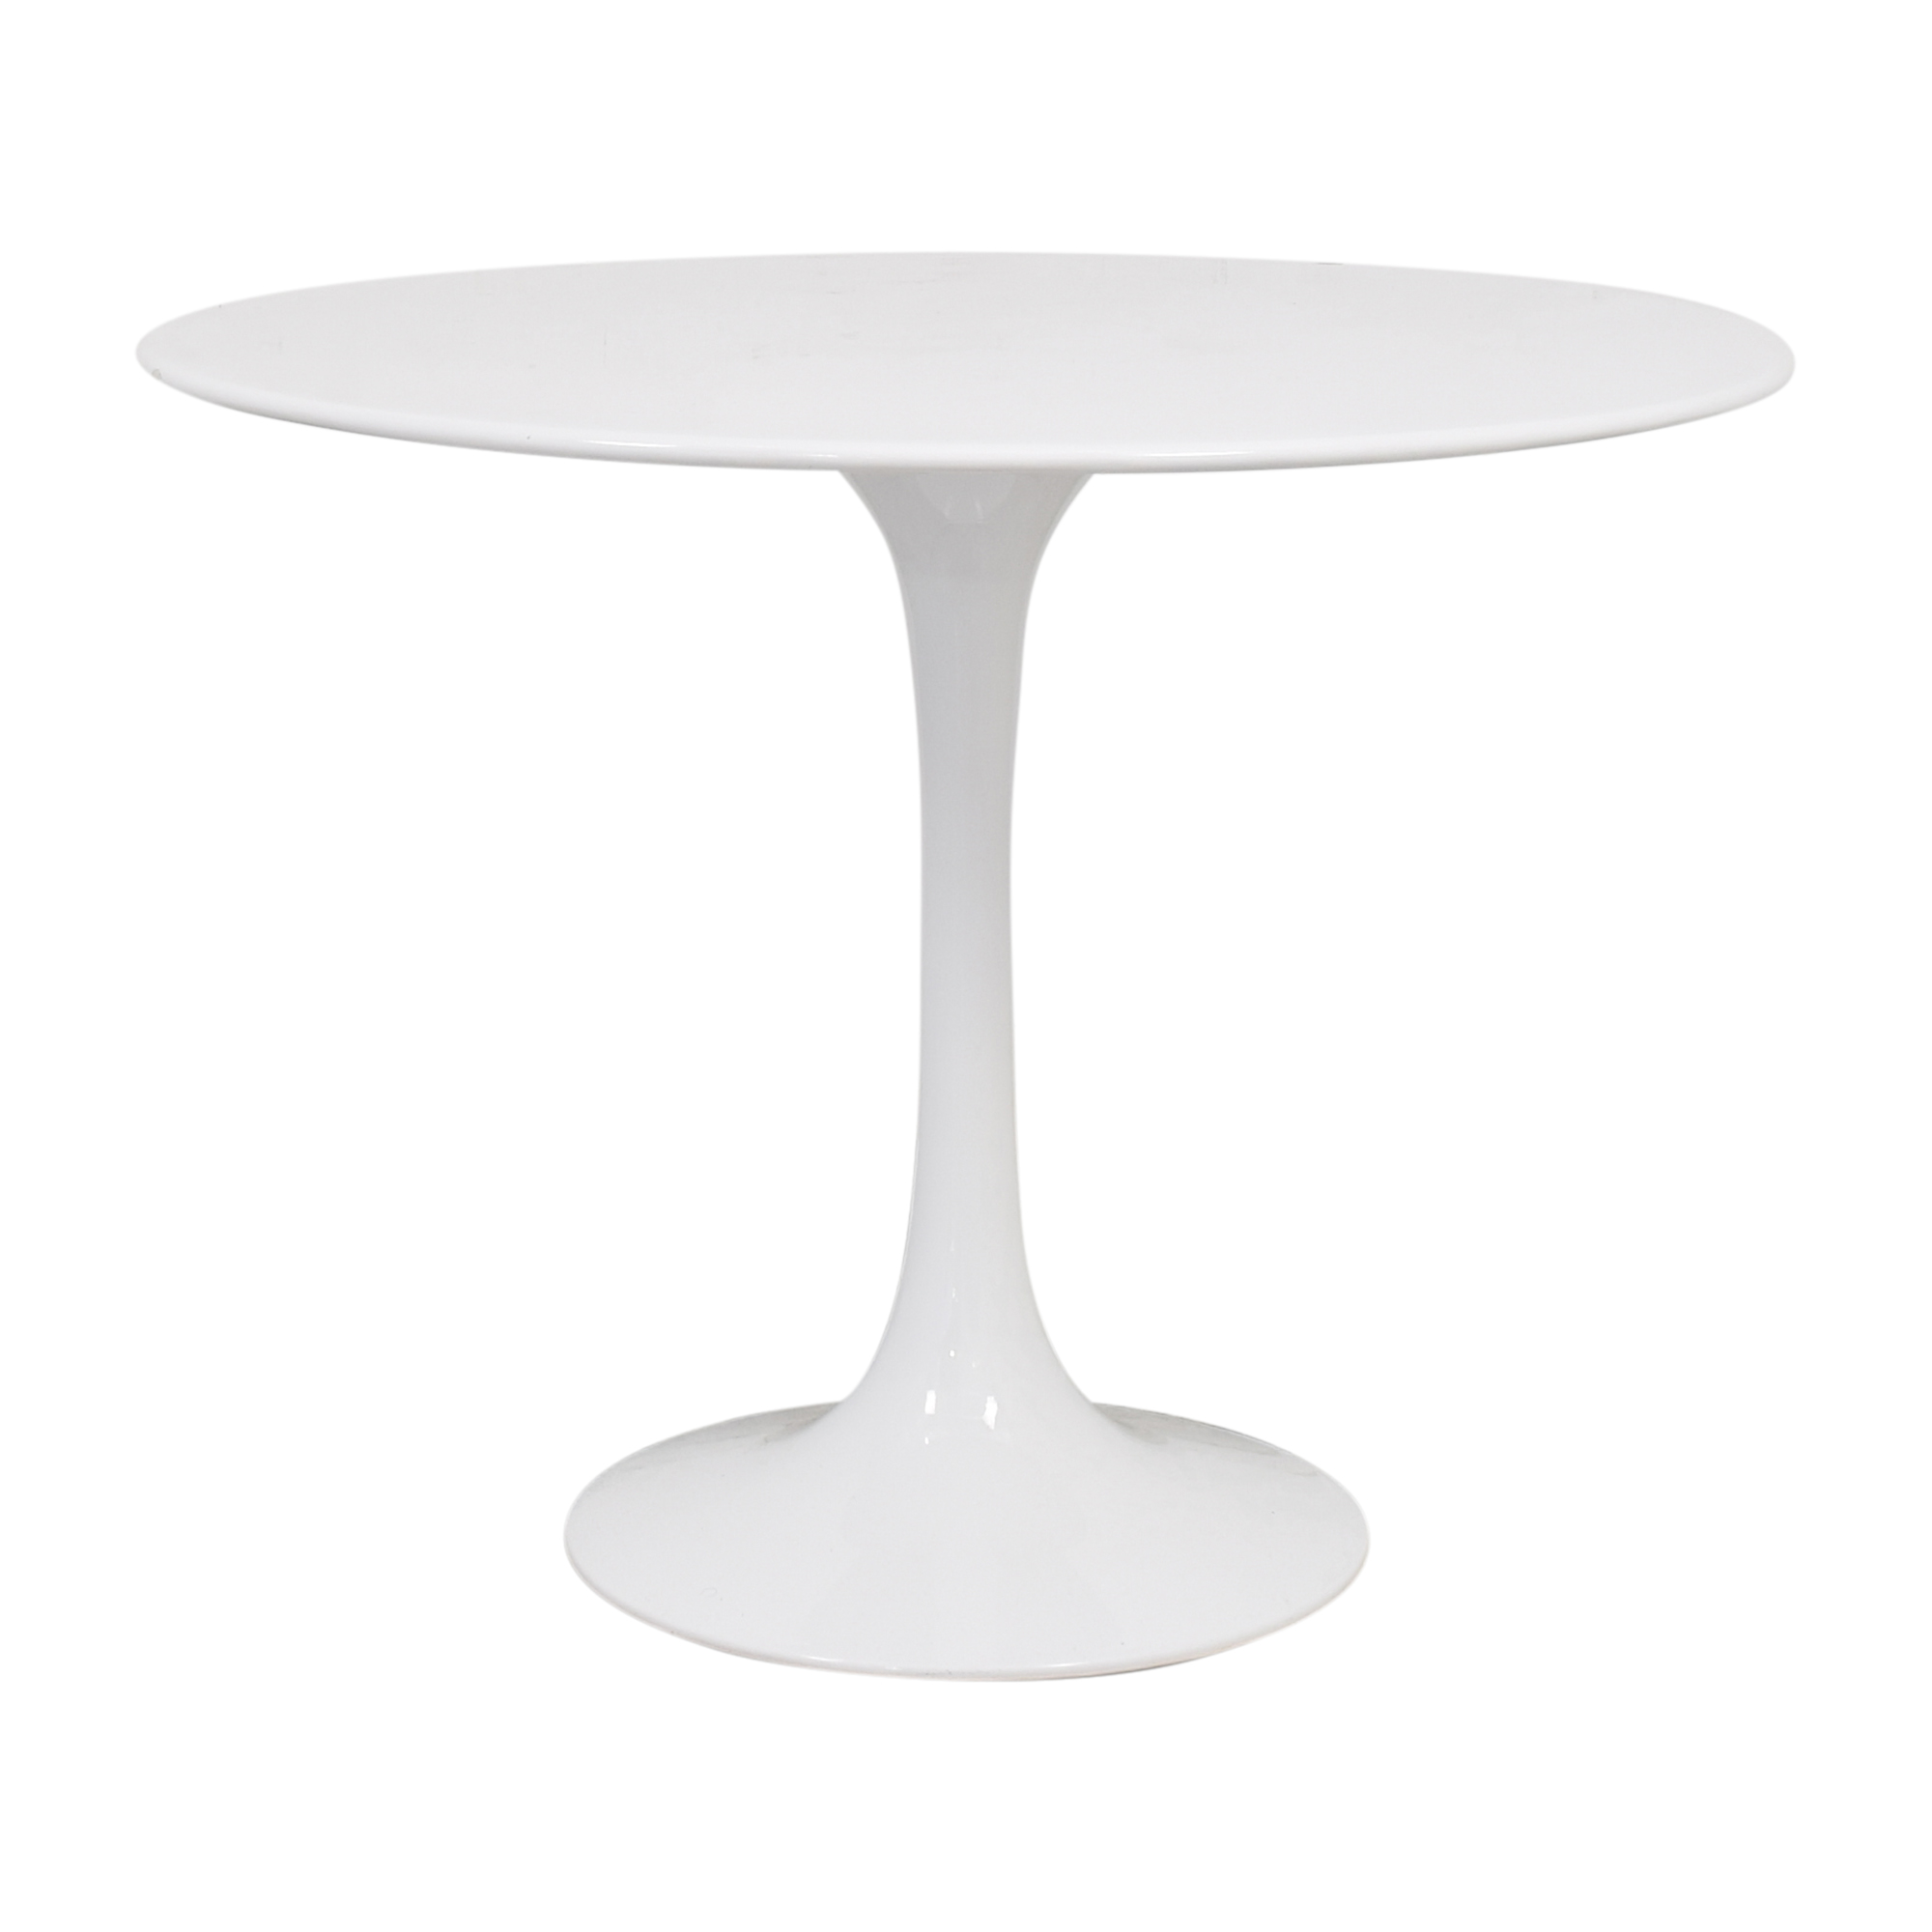 Edgemod Edgemod Daisy Dining Table price